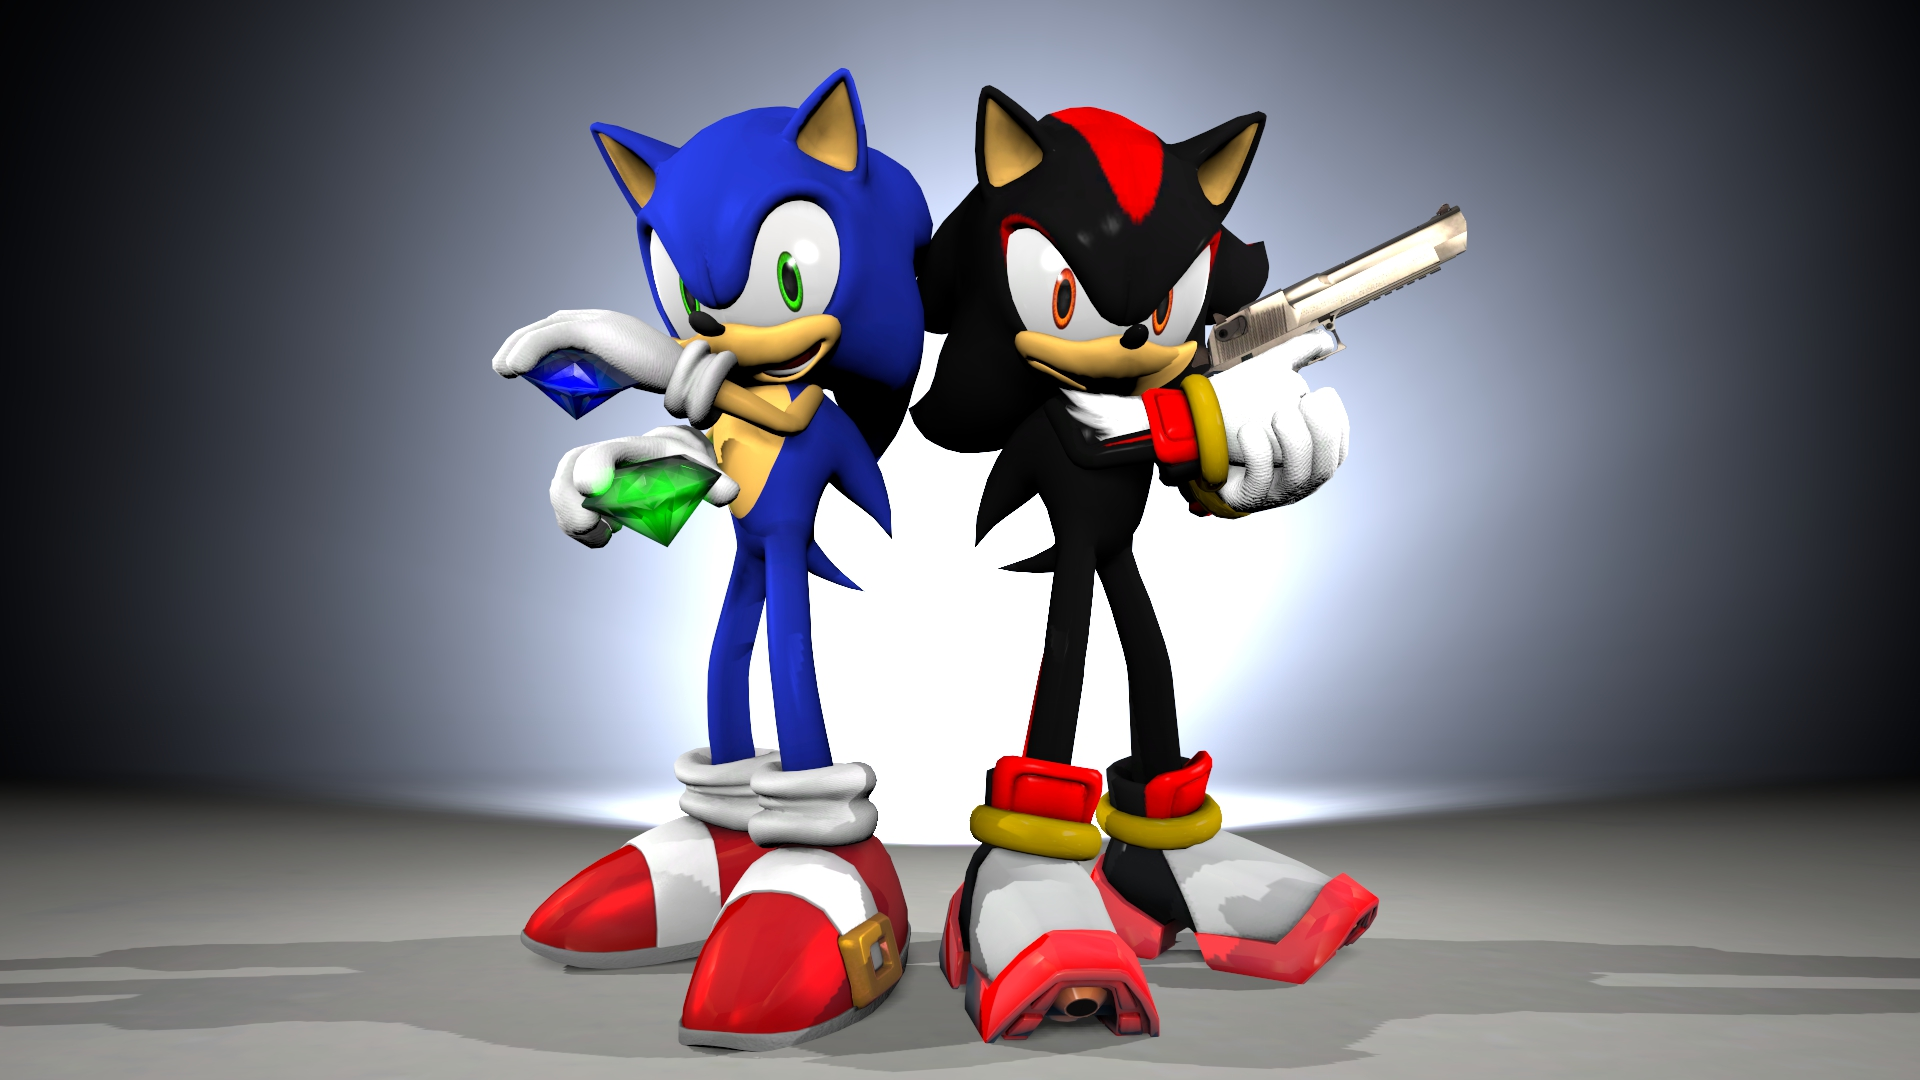 Sonic n 39 shadow wallpaper attempt by theriverkruse on - Sonic et shadow ...